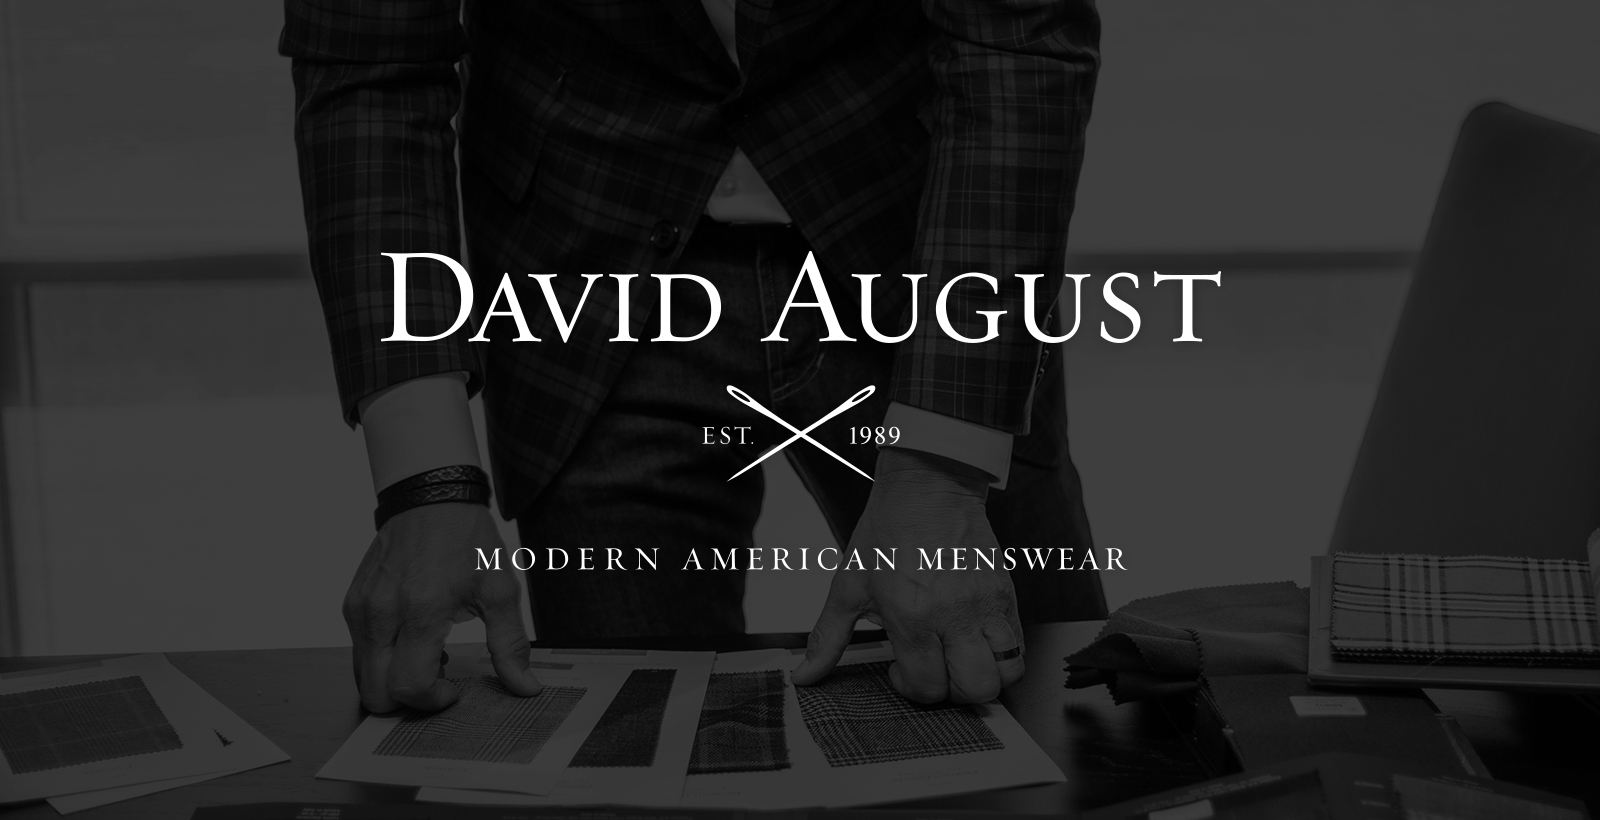 david august logo refresh full logo mark design